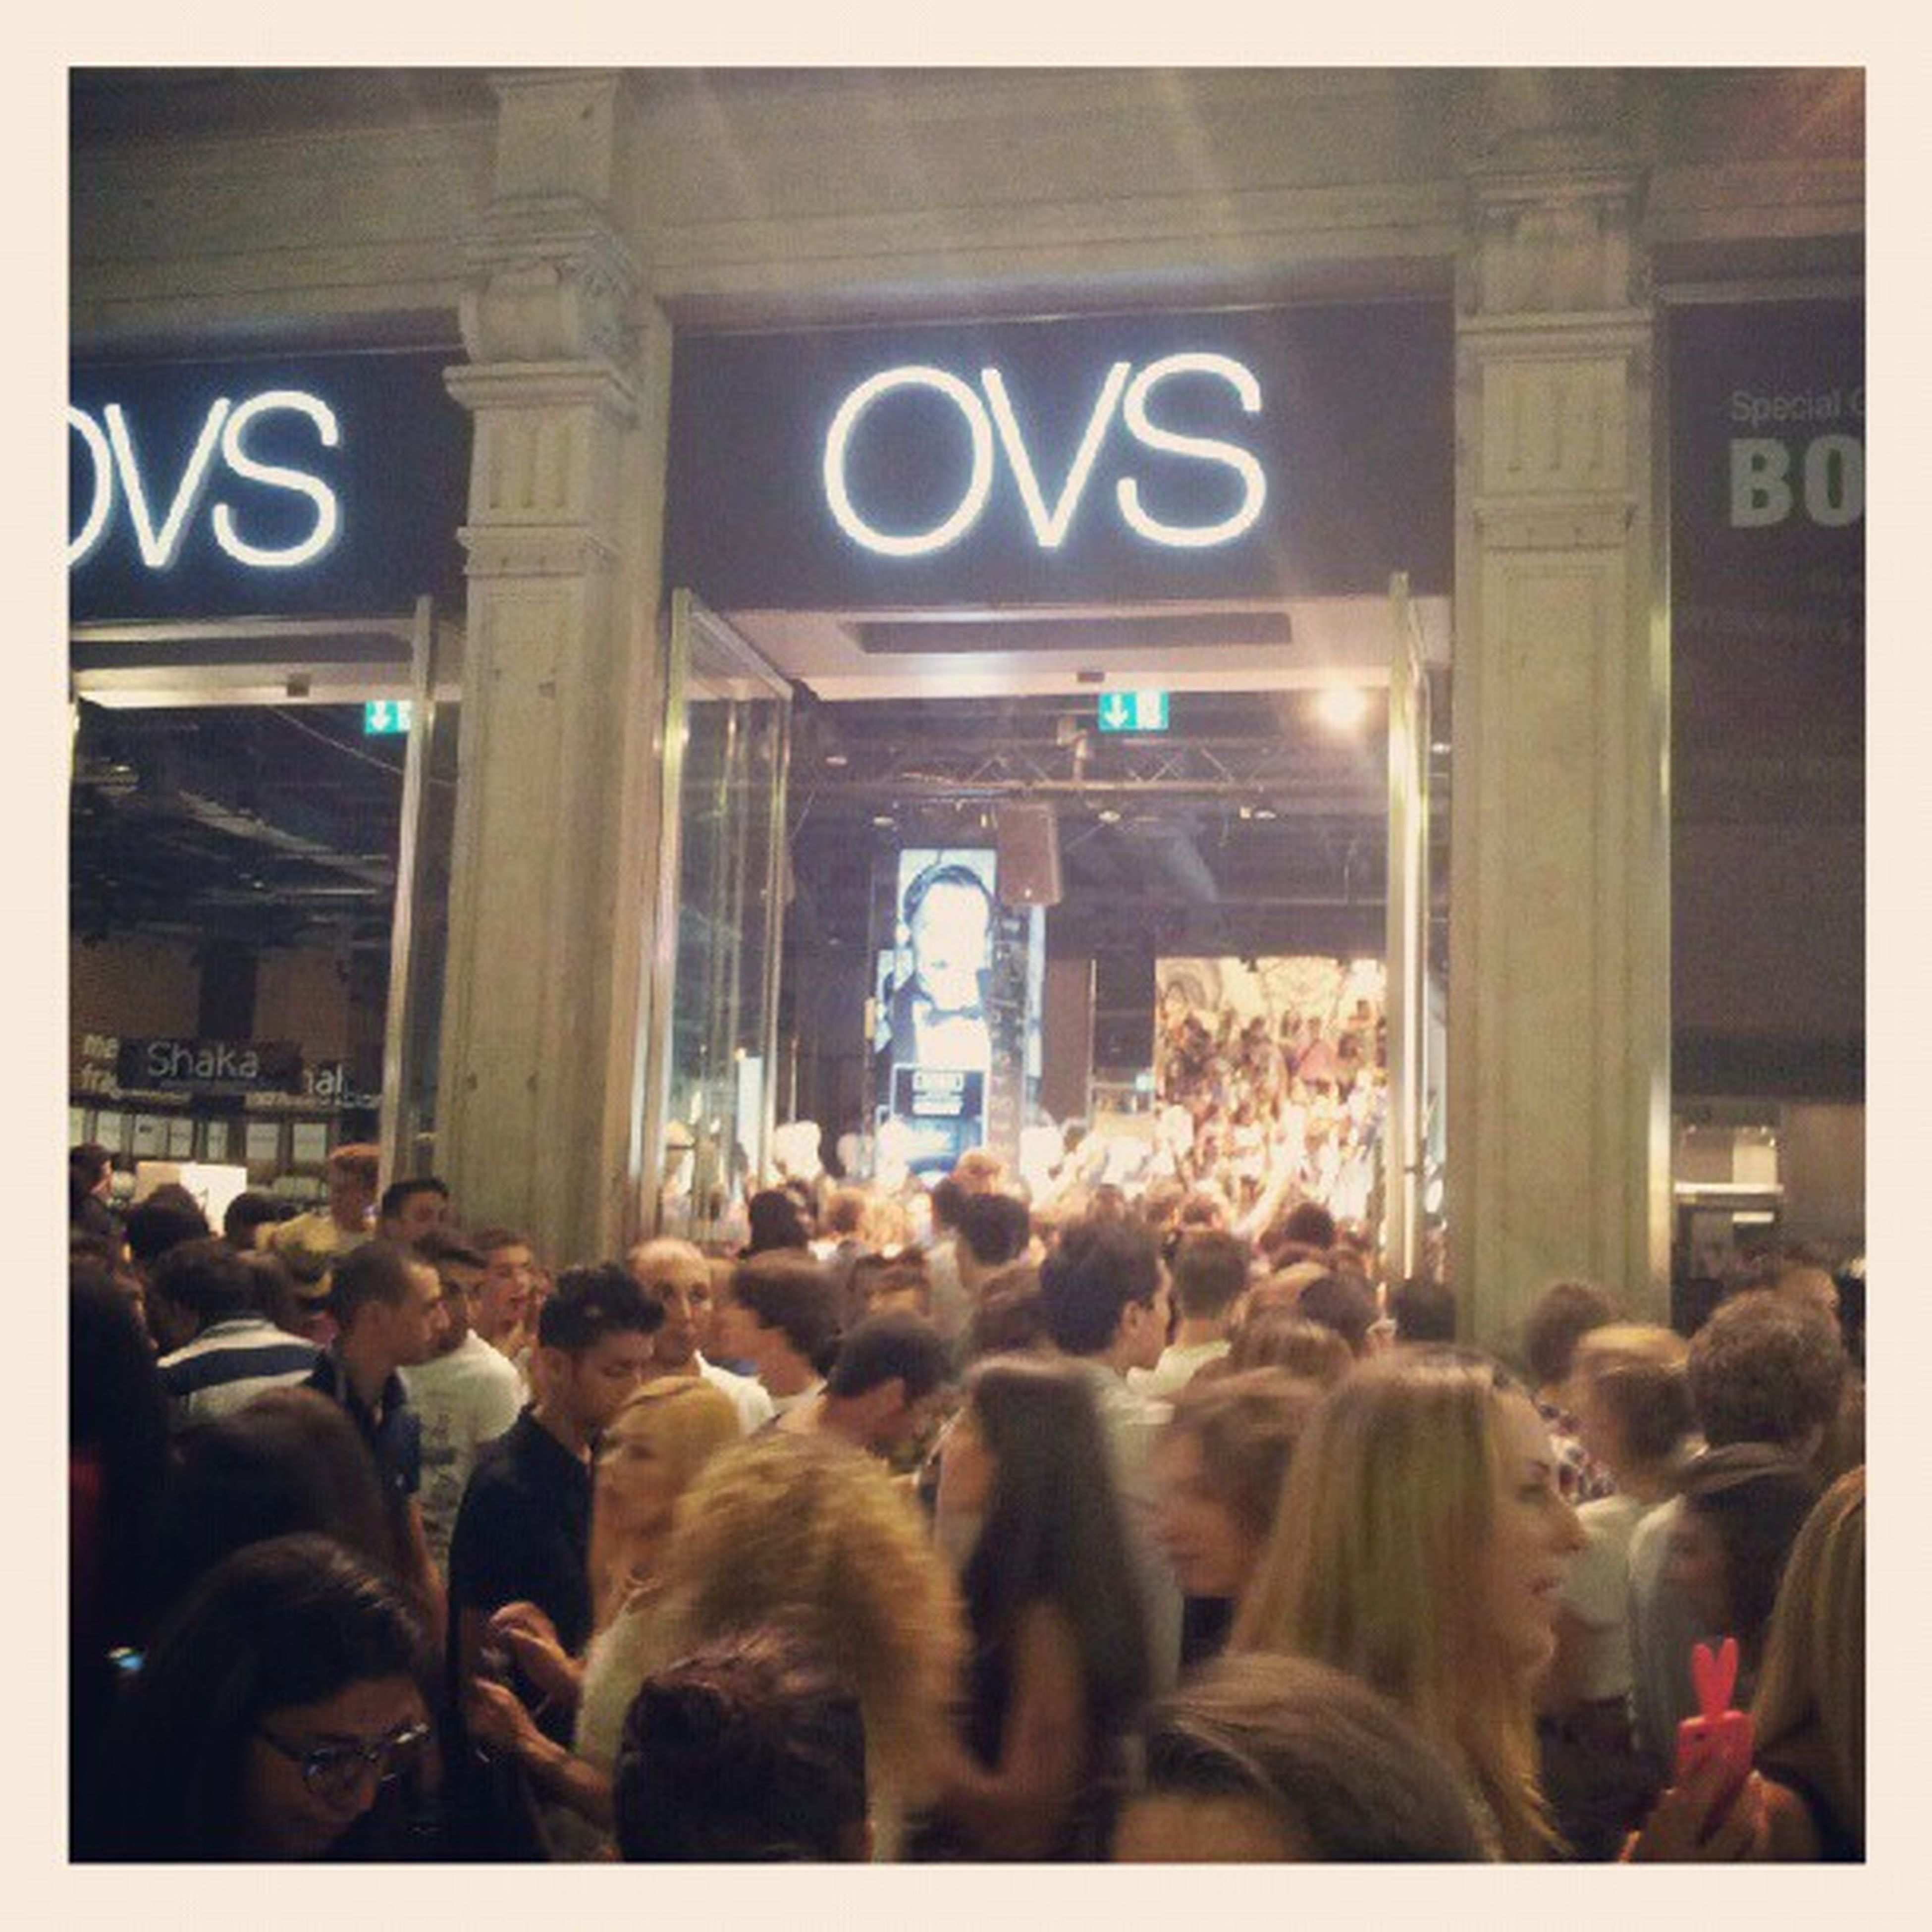 The crowd at #ovs for #bobsinclar during the #VFNO2012 Ovs Bobsinclar Vfno2012